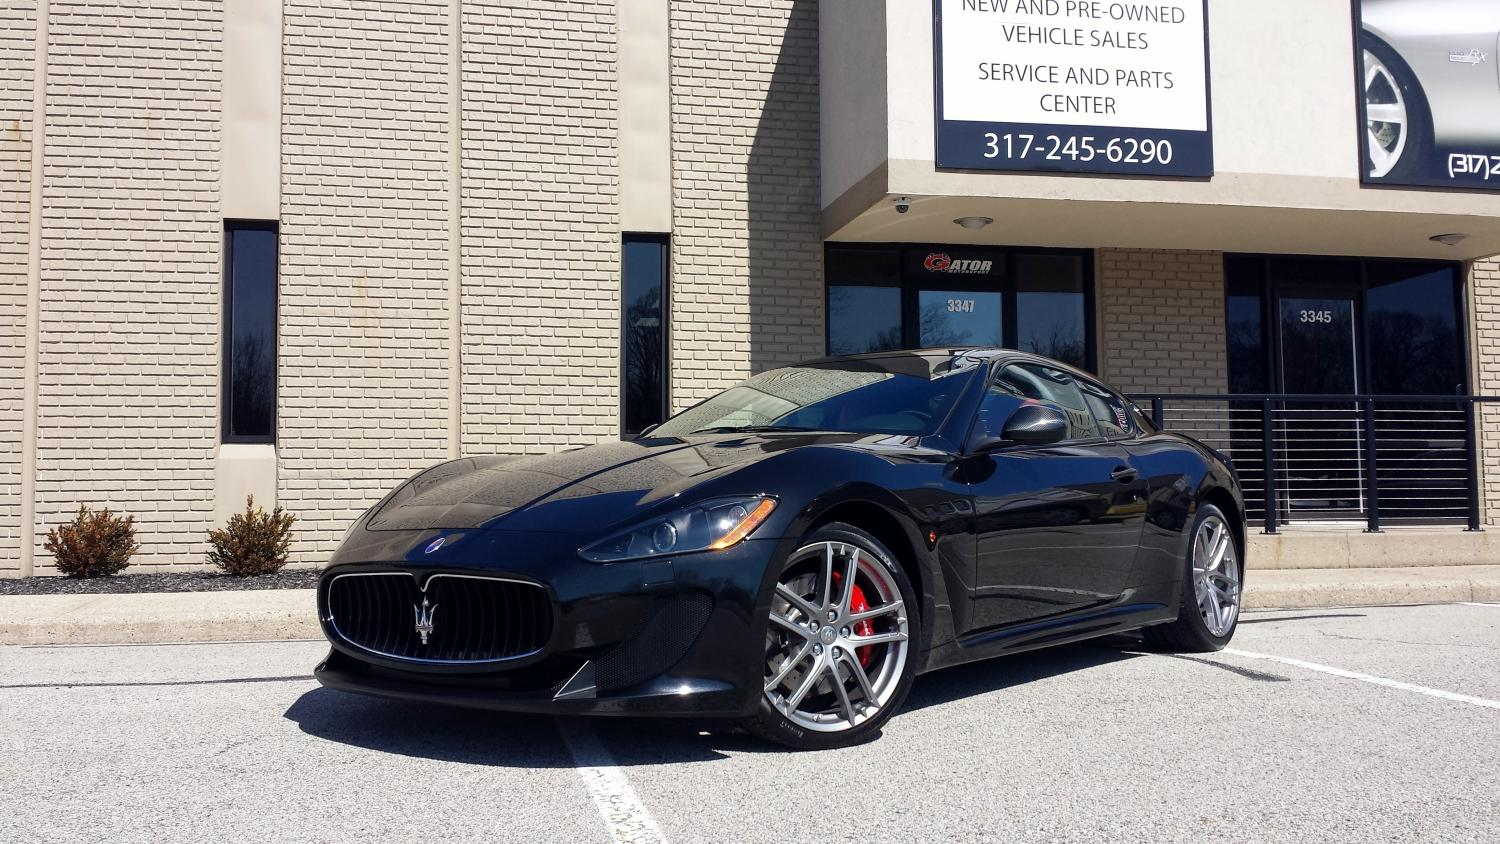 2012 Maserati Granturismo Mc Sold Thank You J L From